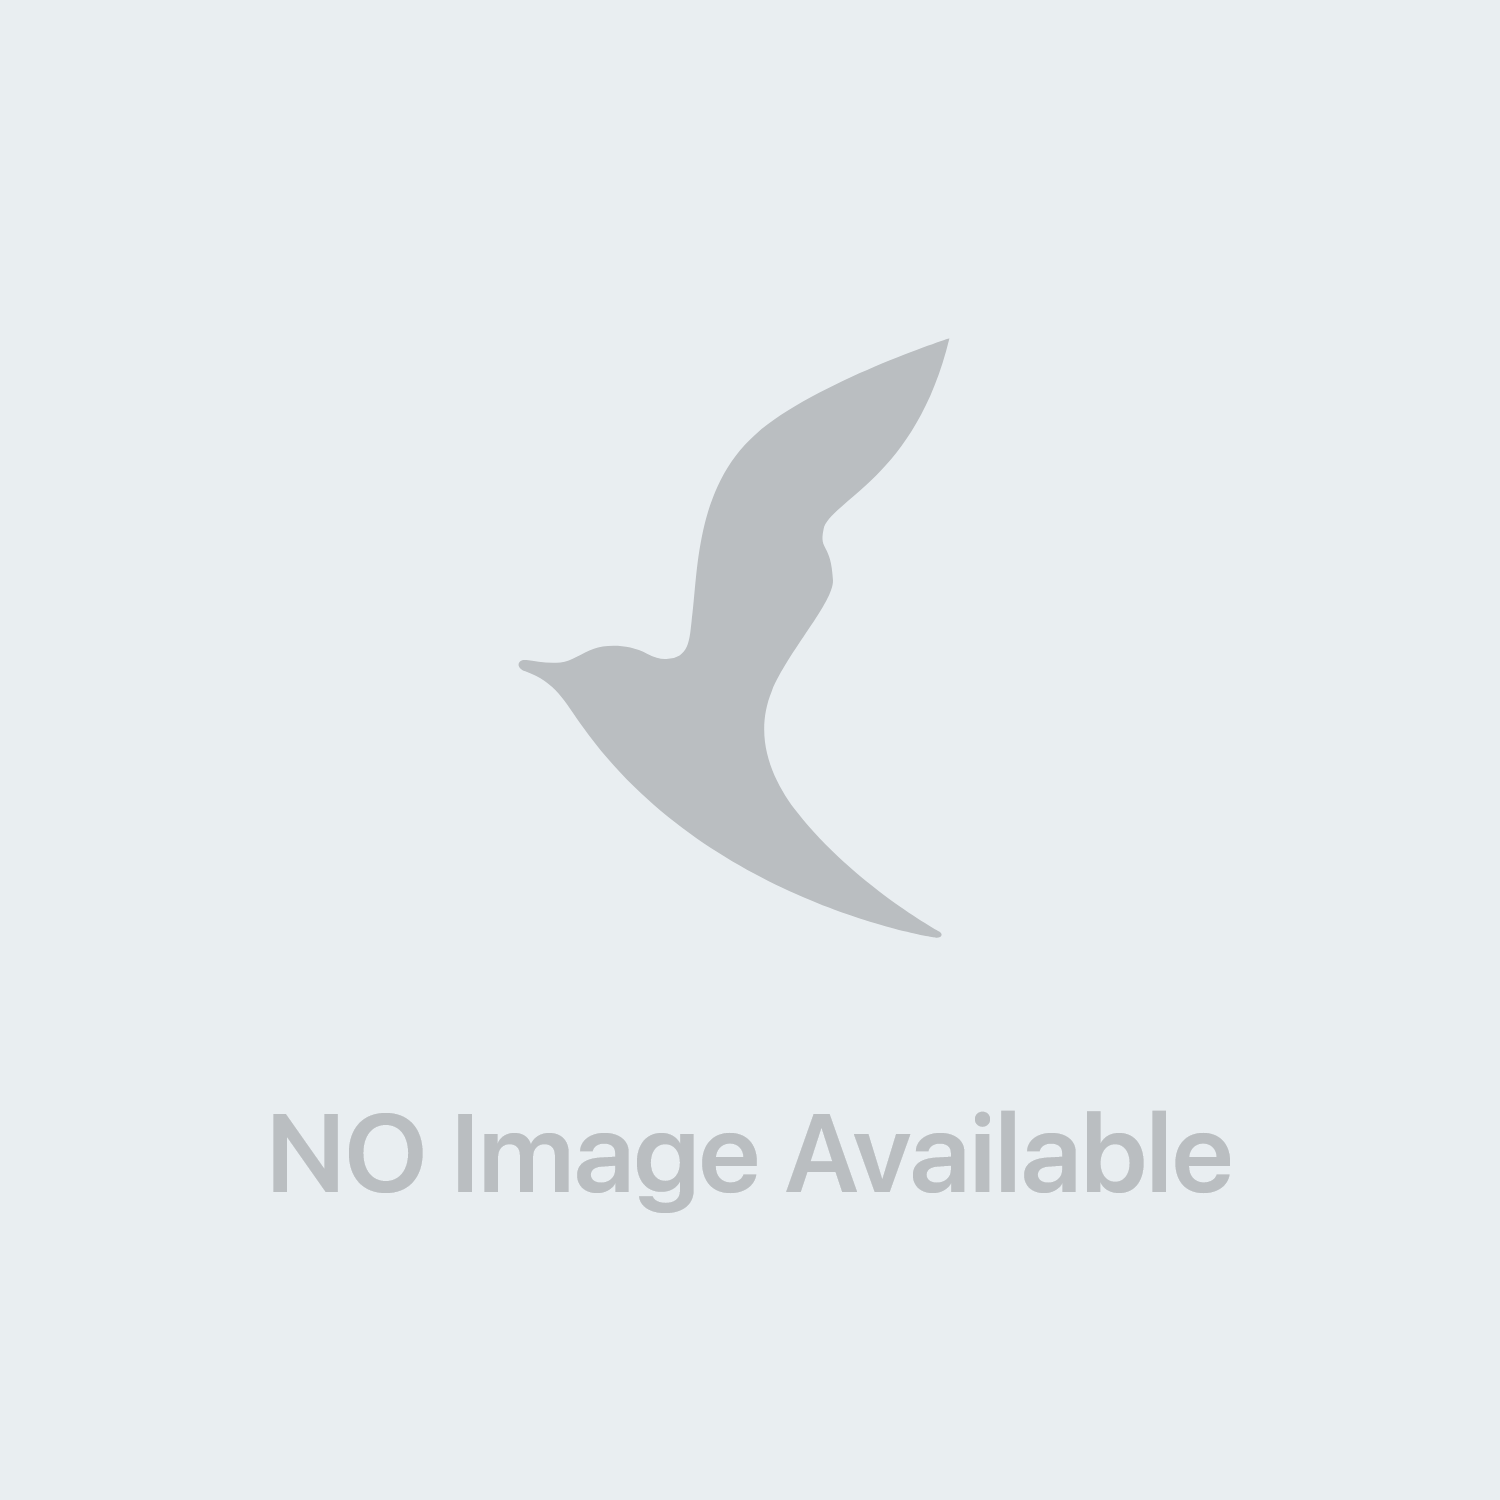 Biomed Organics Forget Your Age Crema Viso Antirughe Ringiovanente 50 Ml